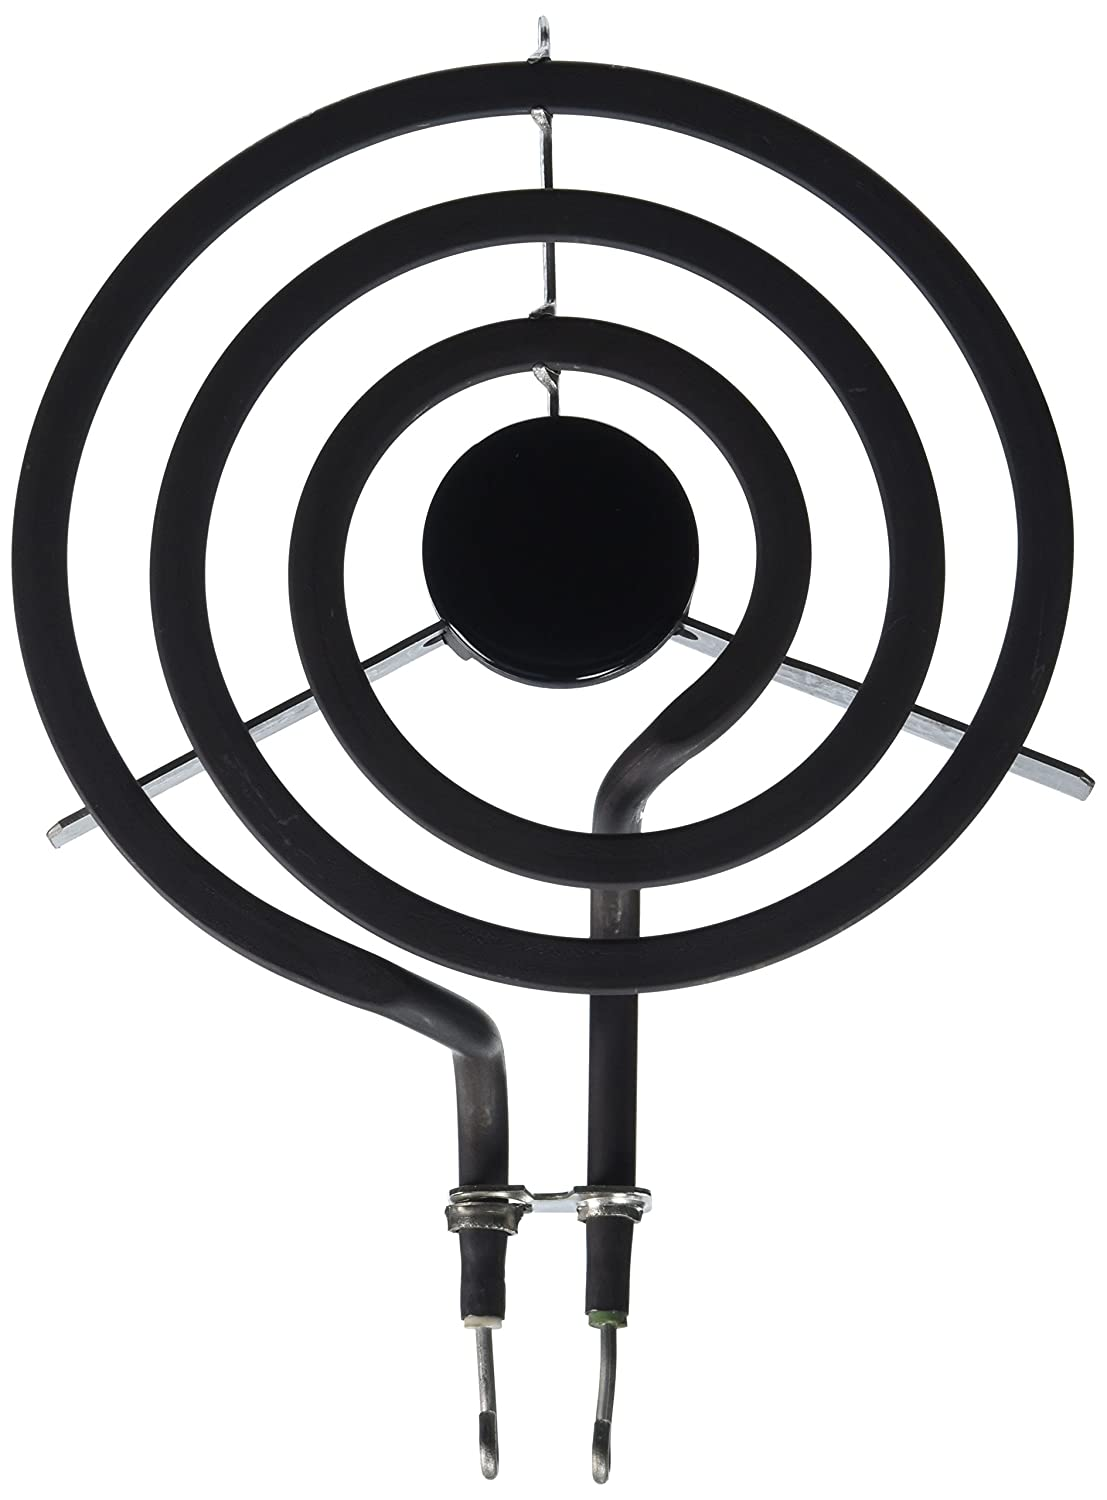 "Tappan 6"" Range Cooktop Stove Replacement Surface Burner Heating Element 318372210"